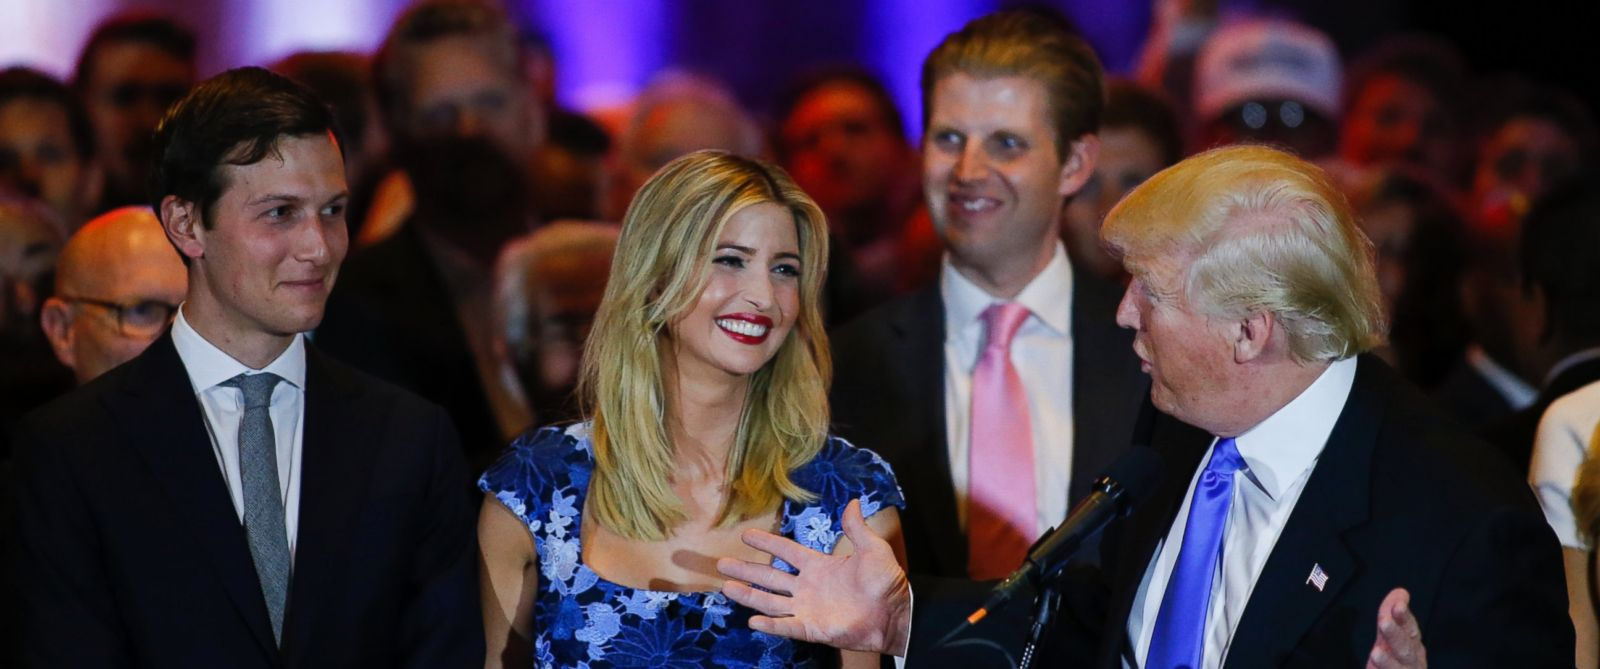 PHOTO: Jared Kushner (L) looks on as his wife Ivanka Trump smiles at her father, Republican presidential front runner Donald Trump, during his speech to supporters and the media at Trump Tower in Manhattan, on May 3, 2016 in New York City.